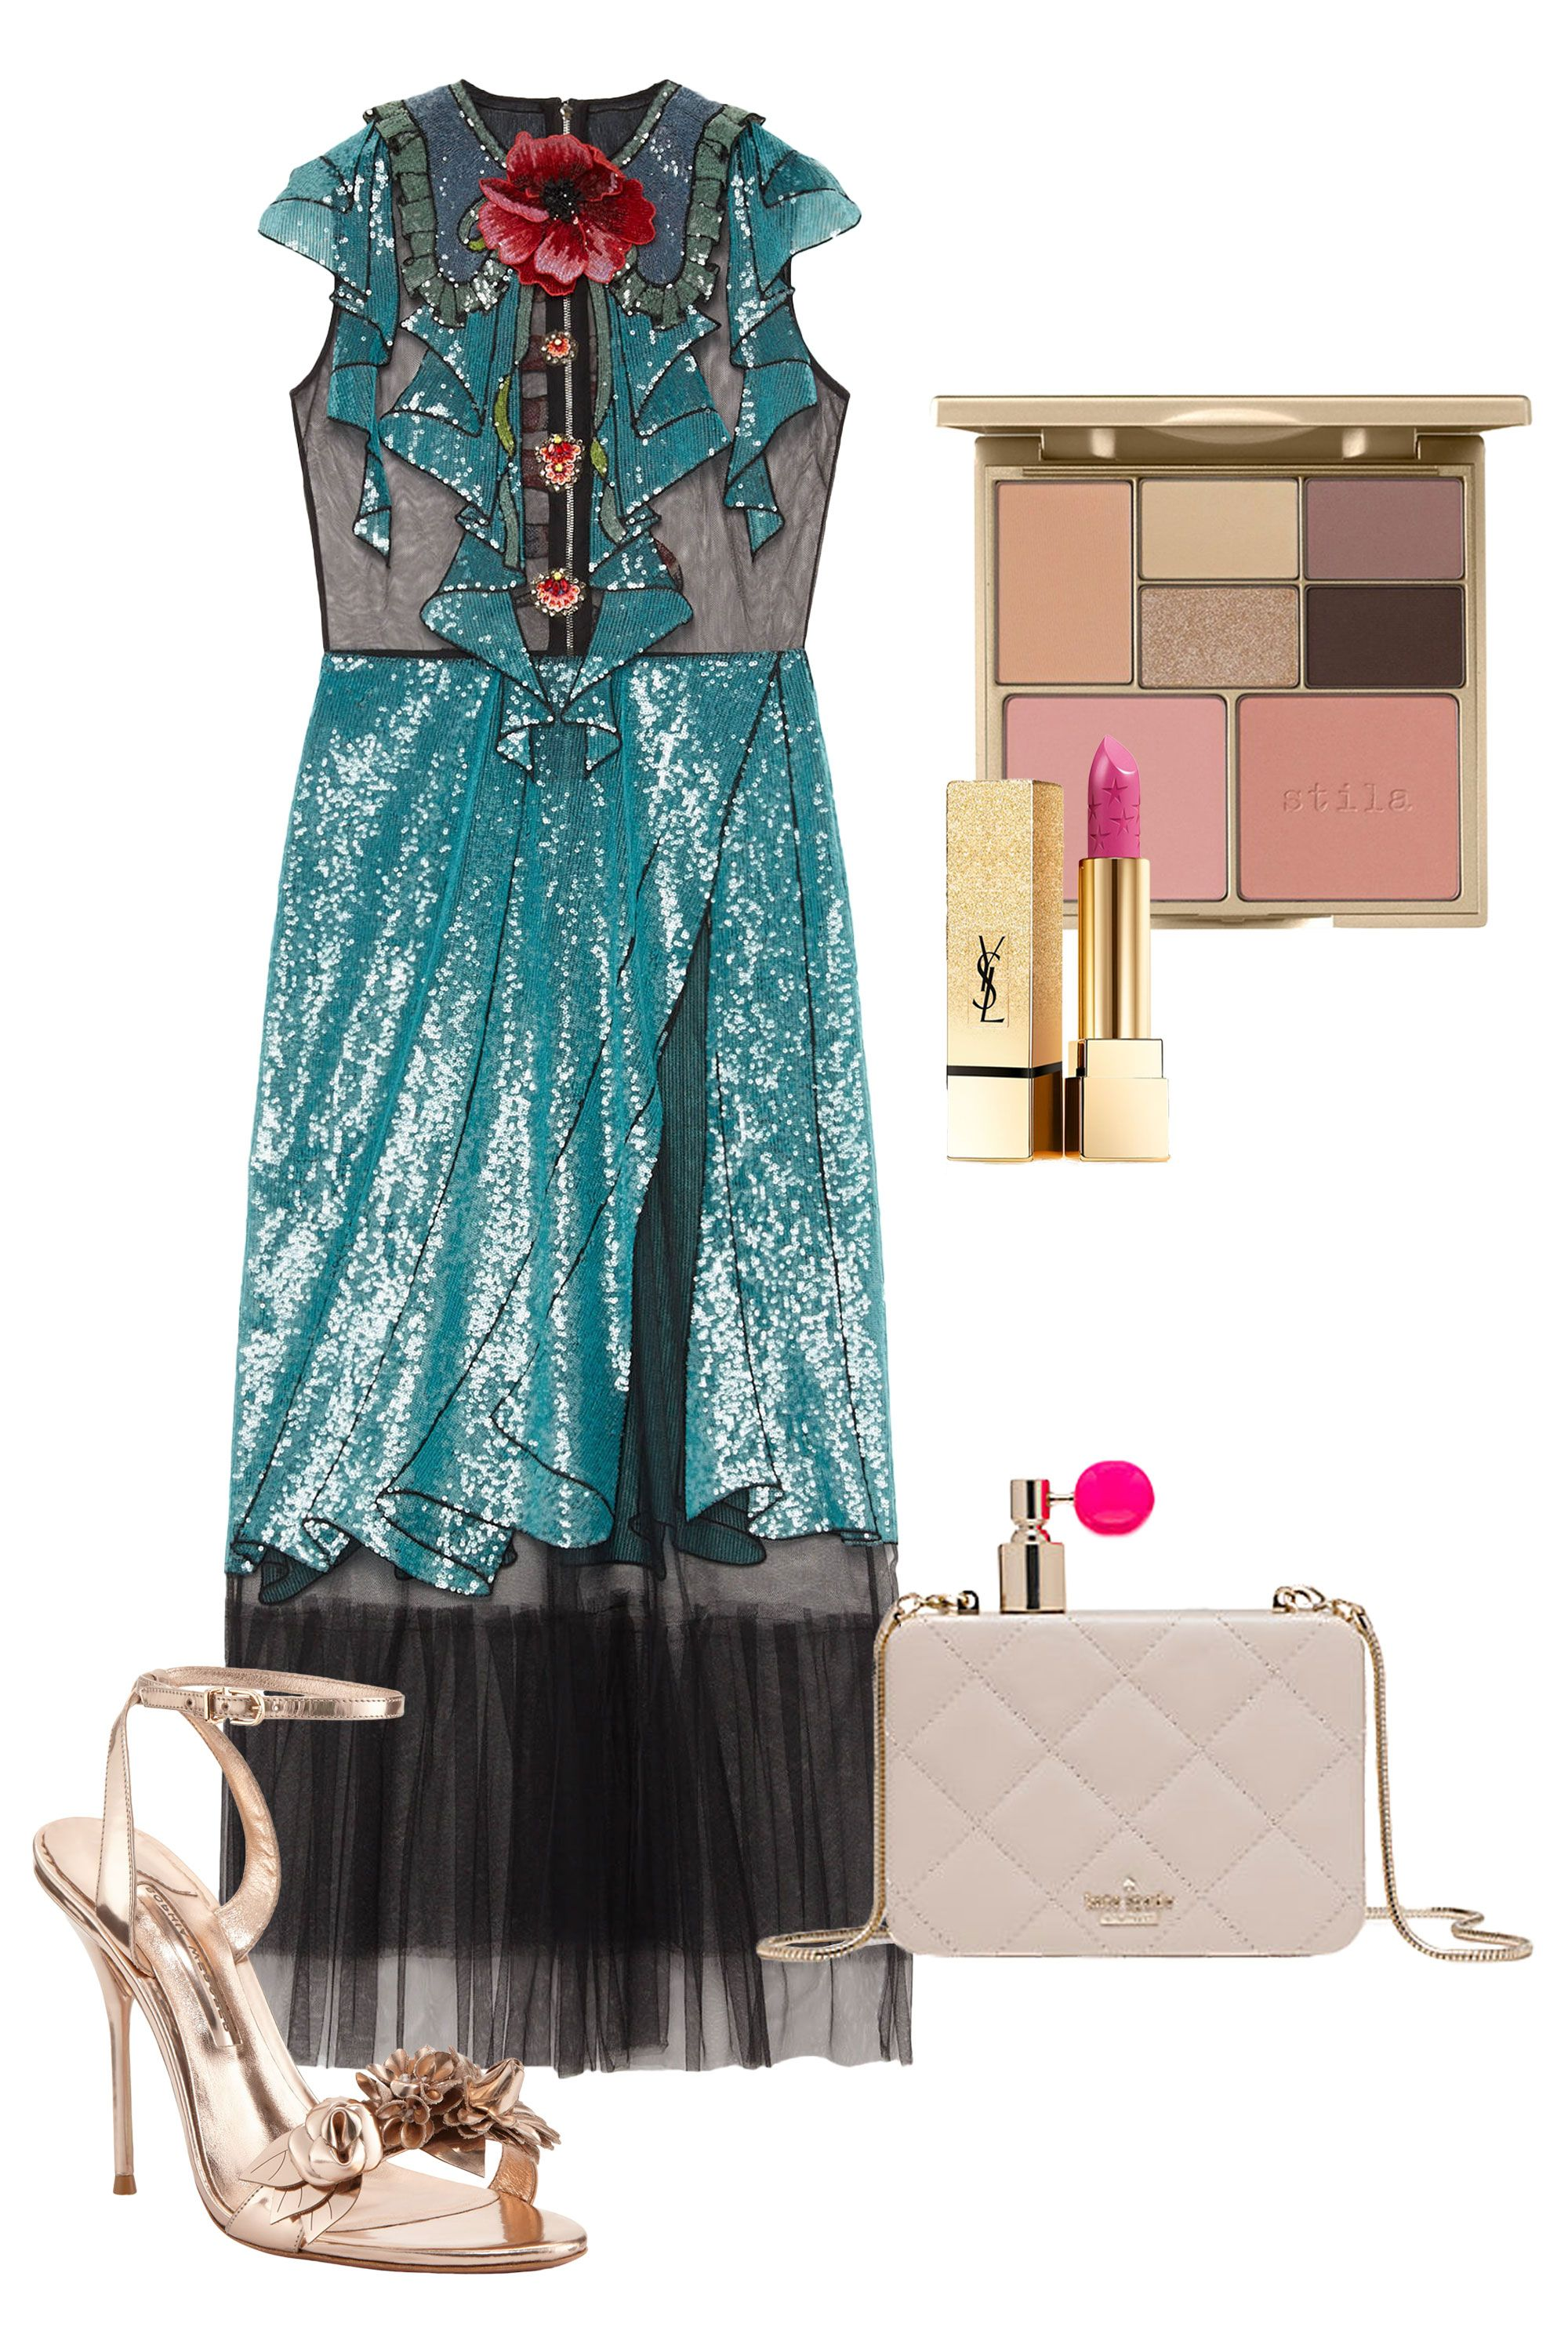 """<p>A little bit sparkly, a little bit sheer—catch the light in this sequin trompe l'oeil cocktail dress that's a throwback to the 1920s, flapper and party girl style. Perfect for a charity gala or autumnal wedding.<br></p><p><br> </p><p><em data-redactor-tag=""""em"""">Gucci Embroidered Tulle Dress, $7900, <a href=""""https://www.gucci.com/us/en/pr/women/womens-ready-to-wear/womens-dresses/embroidered-tulle-dress-p-421694ZGK161969?position=34&listName=ProductGridComponent&categoryPath=Women/Womens-Ready-to-Wear/Womens-Dresses"""" target=""""_blank"""">gucci.com</a>; Sophia Webster Lilico Floral Leather 105mm Sandal, $595, <a href=""""http://www.neimanmarcus.com/Sophia-Webster-Lilico-Floral-Leather-105mm-Sandal-Rose-Gold/prod186680022/p.prod?icid=&searchType=MAIN&rte=%2Fsearch.jsp%3Ffrom%3DbrSearch%26request_type%3Dsearch%26search_type%3Dkeyword%26q%3Drose+gold+shoes&eItemId=prod186680022&cmCat=search&tc=20&currentItemCount=1&q=rose+gold+shoes&searchURL=/search.jsp%3Ffrom%3DbrSearch%26start%3D0%26rows%3D120%26q%3Drose+gold+shoes%26l%3Drose+gold+shoes%26request_type%3Dsearch%26search_type%3Dkeyword"""" target=""""_blank"""">nemiamnarcus.com</a>; Stila Perfect Me, Perfect Hue Eye & Cheek Palette, $39, <a href=""""http://shop.nordstrom.com/s/hourglass-modernist-eyeshadow-palette/3982507?origin=category-personalizedsort"""" target=""""_blank"""">nordstrom.com</a>; Kate Spade On Pointe Perfume Clutch, $398, <a href=""""https://www.katespade.com/products/on-pointe-perfume-bottle-clutch/PXRU7073.html?cgid=ks-handbags-clutches&dwvar_PXRU7073_color=974#start=1&cgid=ks-handbags-clutches"""" target=""""_blank"""">katespade.com</a>; Yves Saint LaurentRouge Pur Couture Star Clash Lip Color, $37, </em><a href=""""http://shop.nordstrom.com/s/yves-saint-laurent-rouge-pur-couture-star-clash-lip-color-limited-edition/4430047"""" target=""""_blank""""><em data-redactor-tag=""""em"""">nordstrom.com</em></a></p>"""